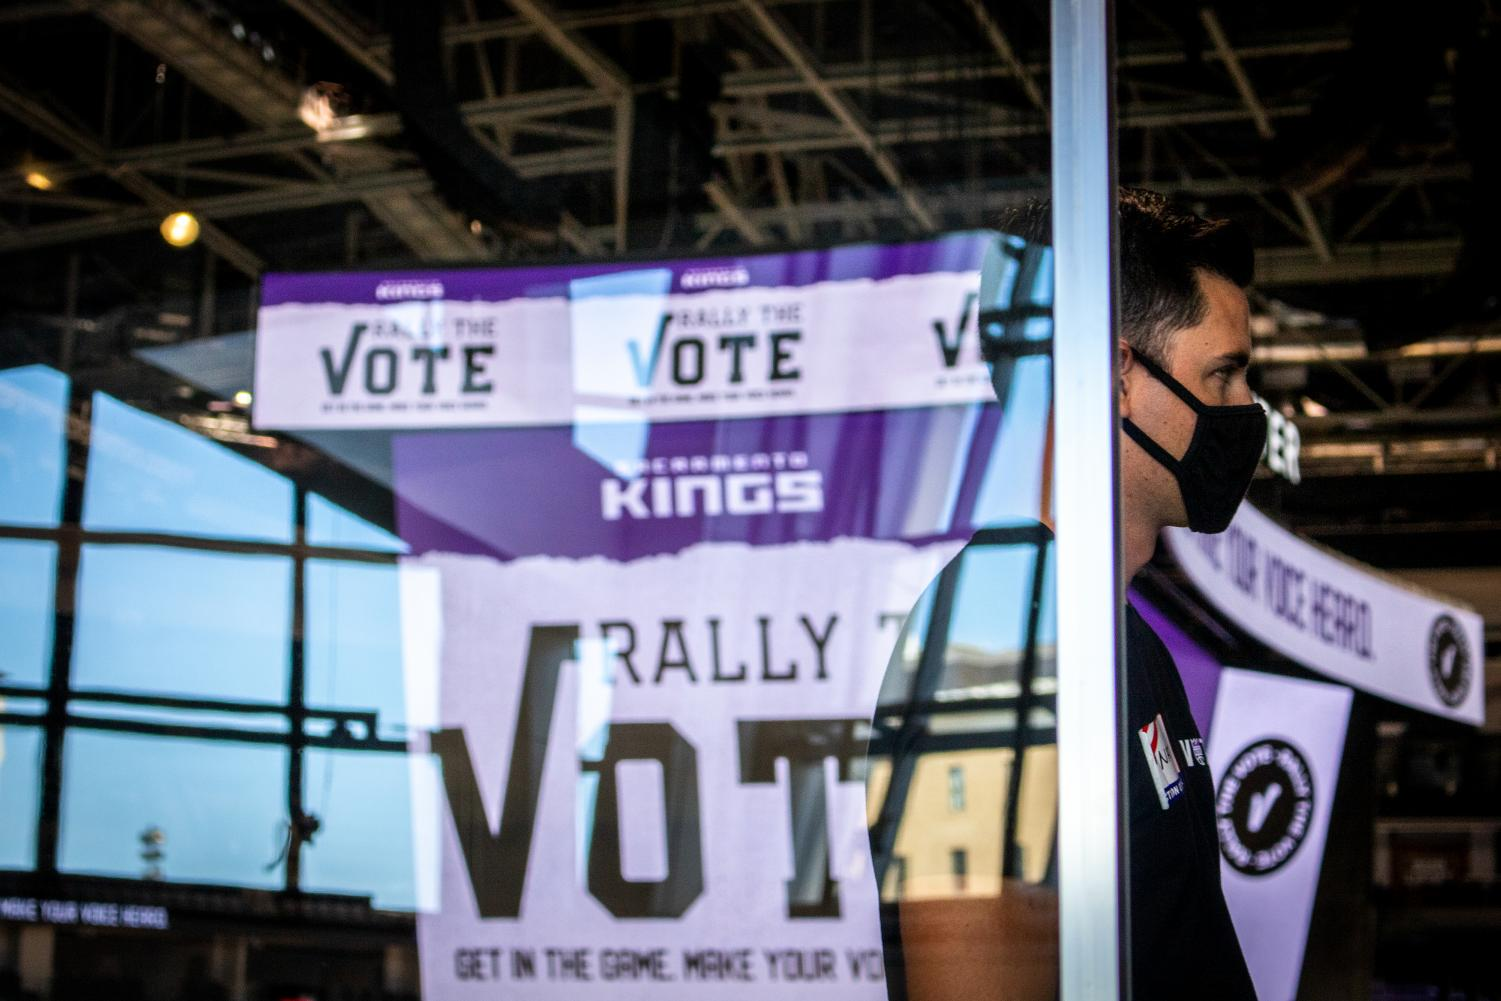 A poll worker stands behind a standing sheet of plexiglass at the Golden 1 Center Tuesday, Nov. 3, 2020. The home of the Sacramento Kings follows social distancing protocols to prevent the spread of COVID-19. (Rahul Lal)